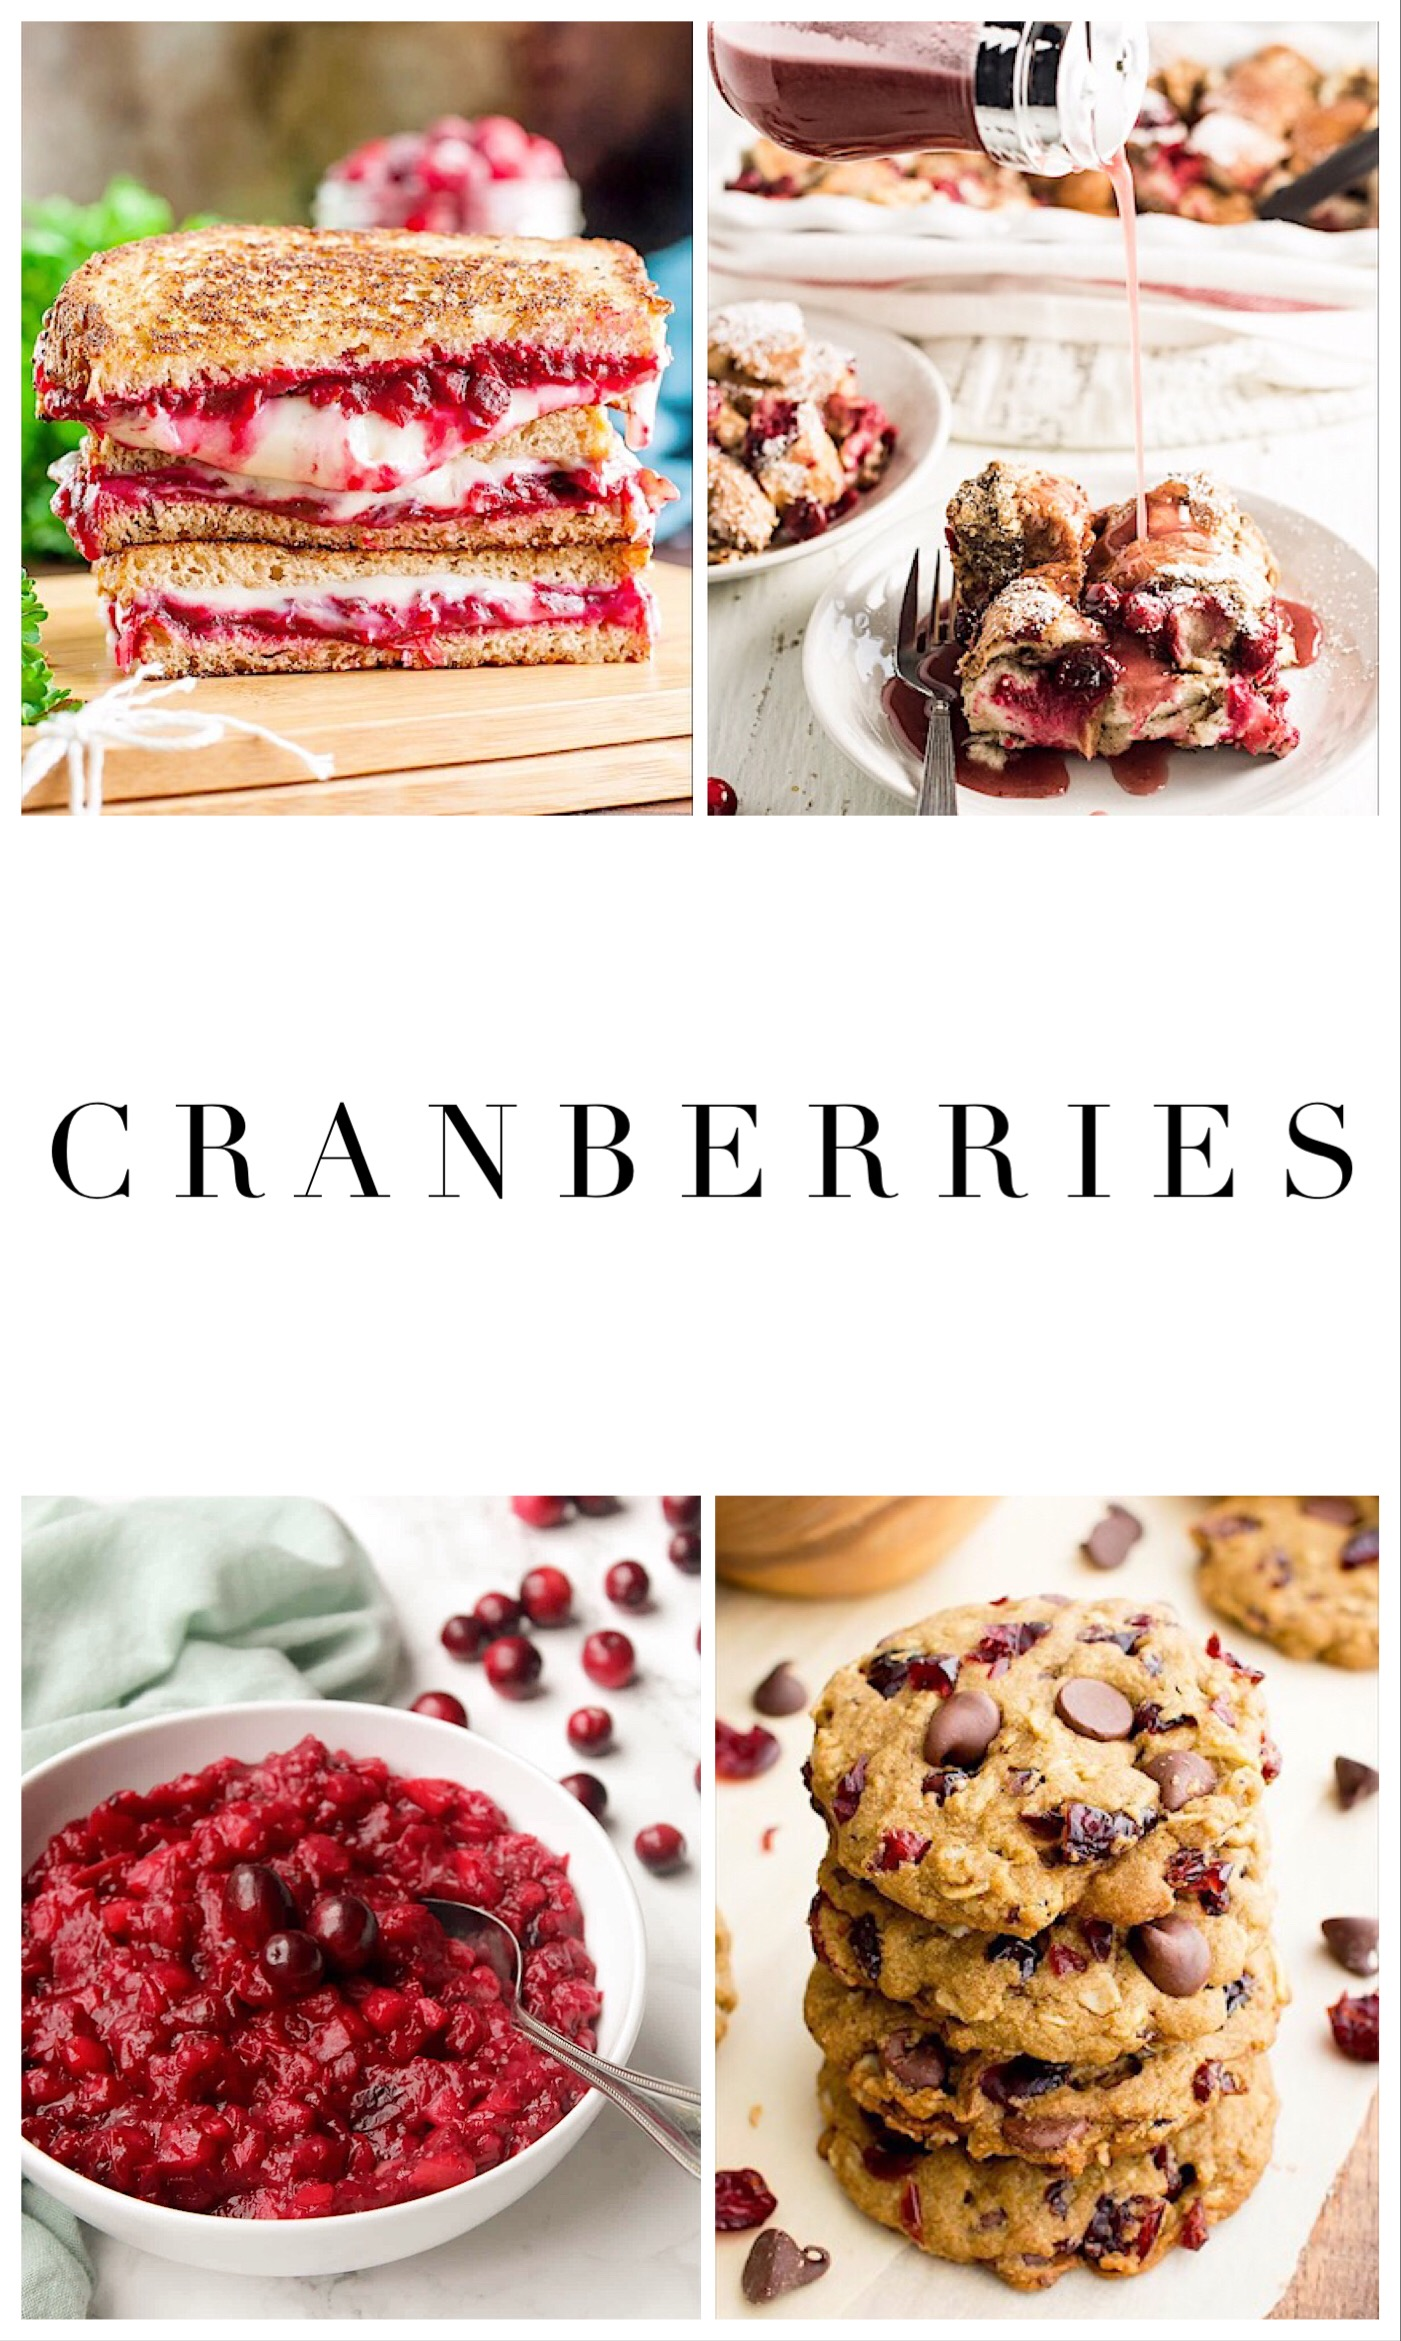 """1.    Grilled """"cheese""""   , 2.    Baked cranberry french toast   , 3.    Homemade cranberry sauce   , 4.    Cranberry chocolate chip cookies"""